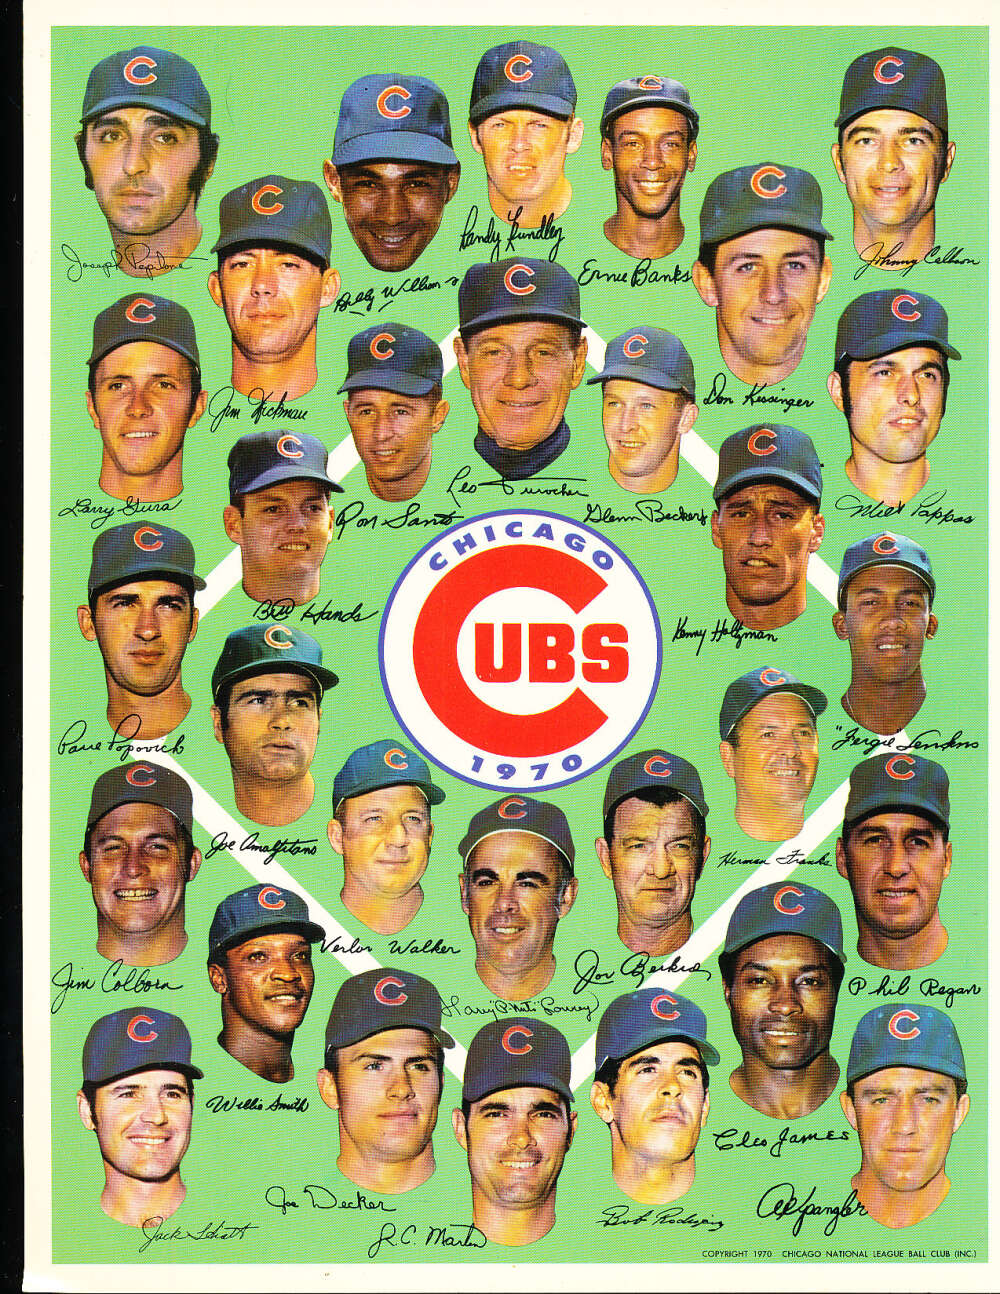 1970 Chicago cubs Team Picture 8.5 x 11